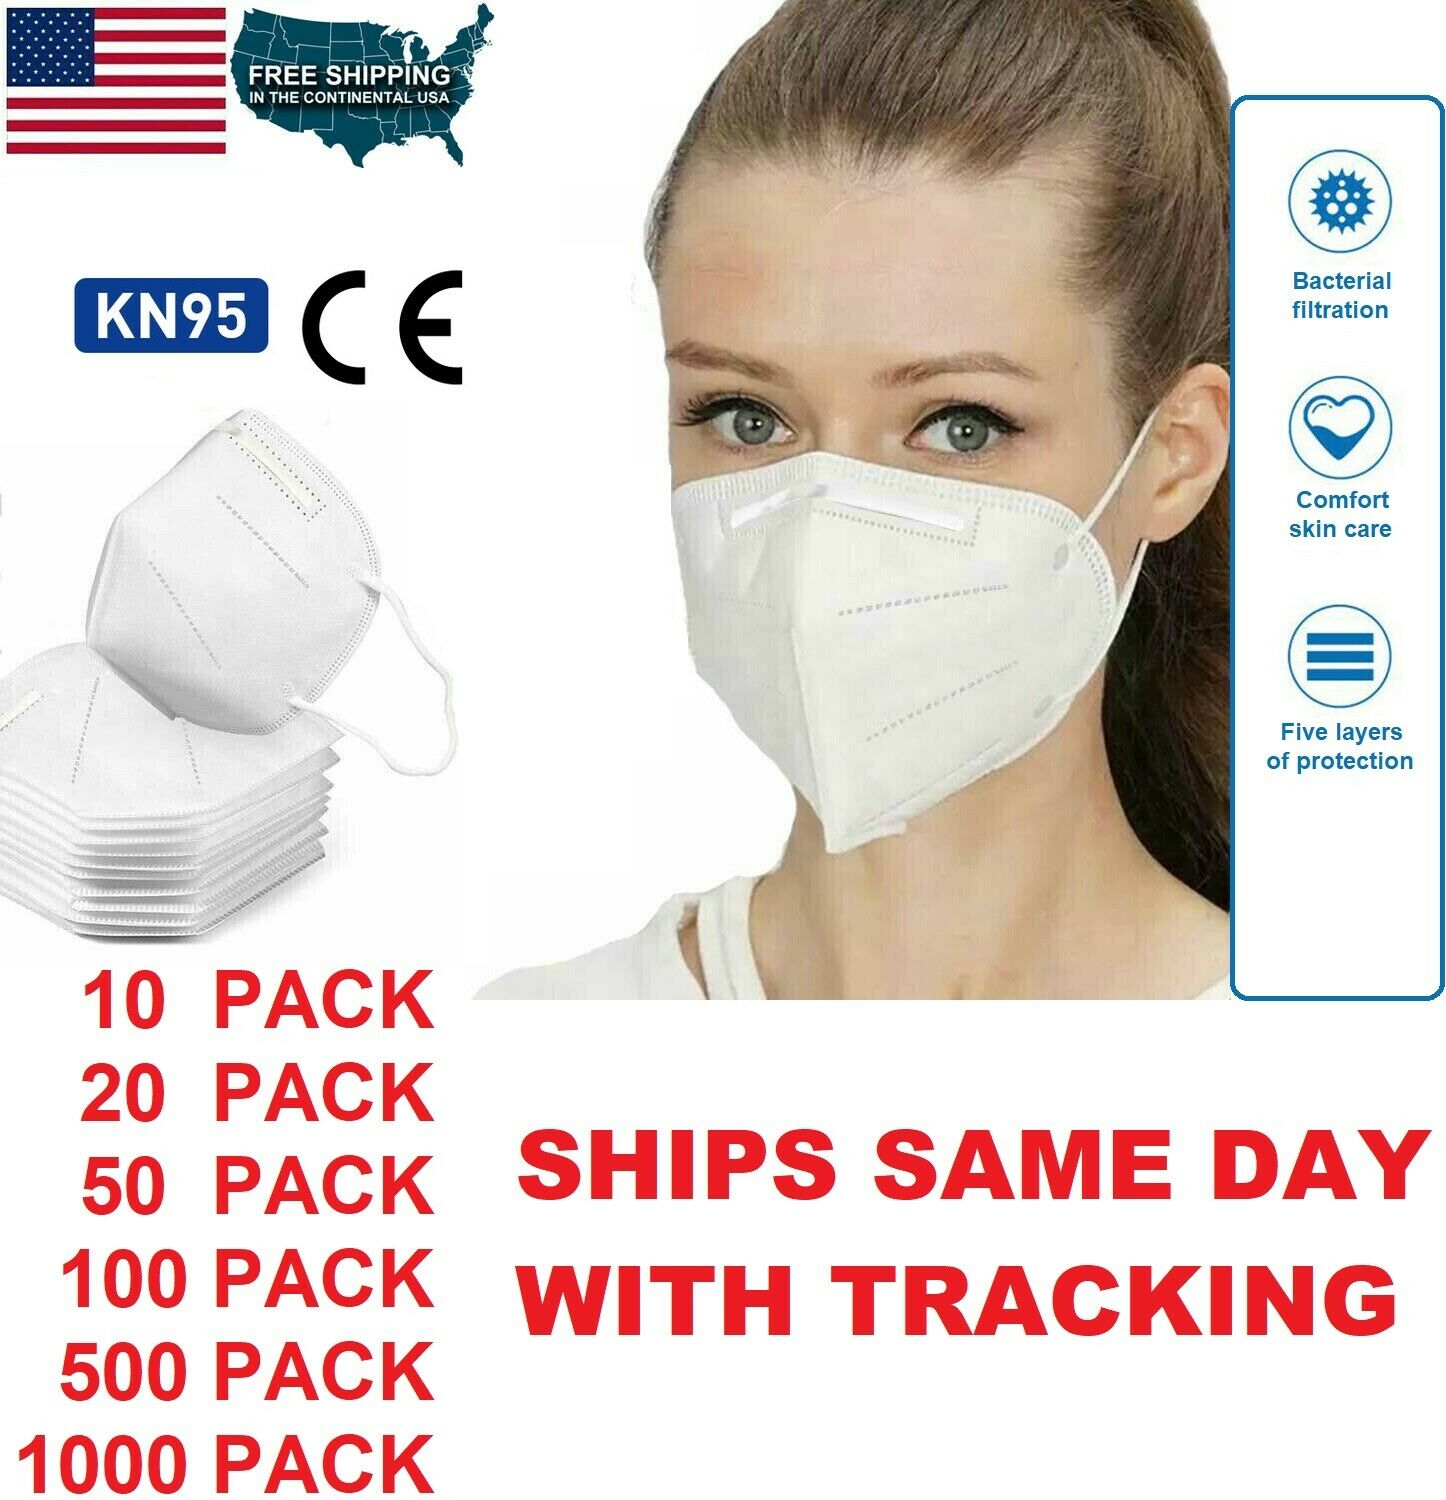 10-100 PC Childrens Disposable Face Cloth 3Ply Ear Loop Fabric,Outdoor Sport Safety Protection